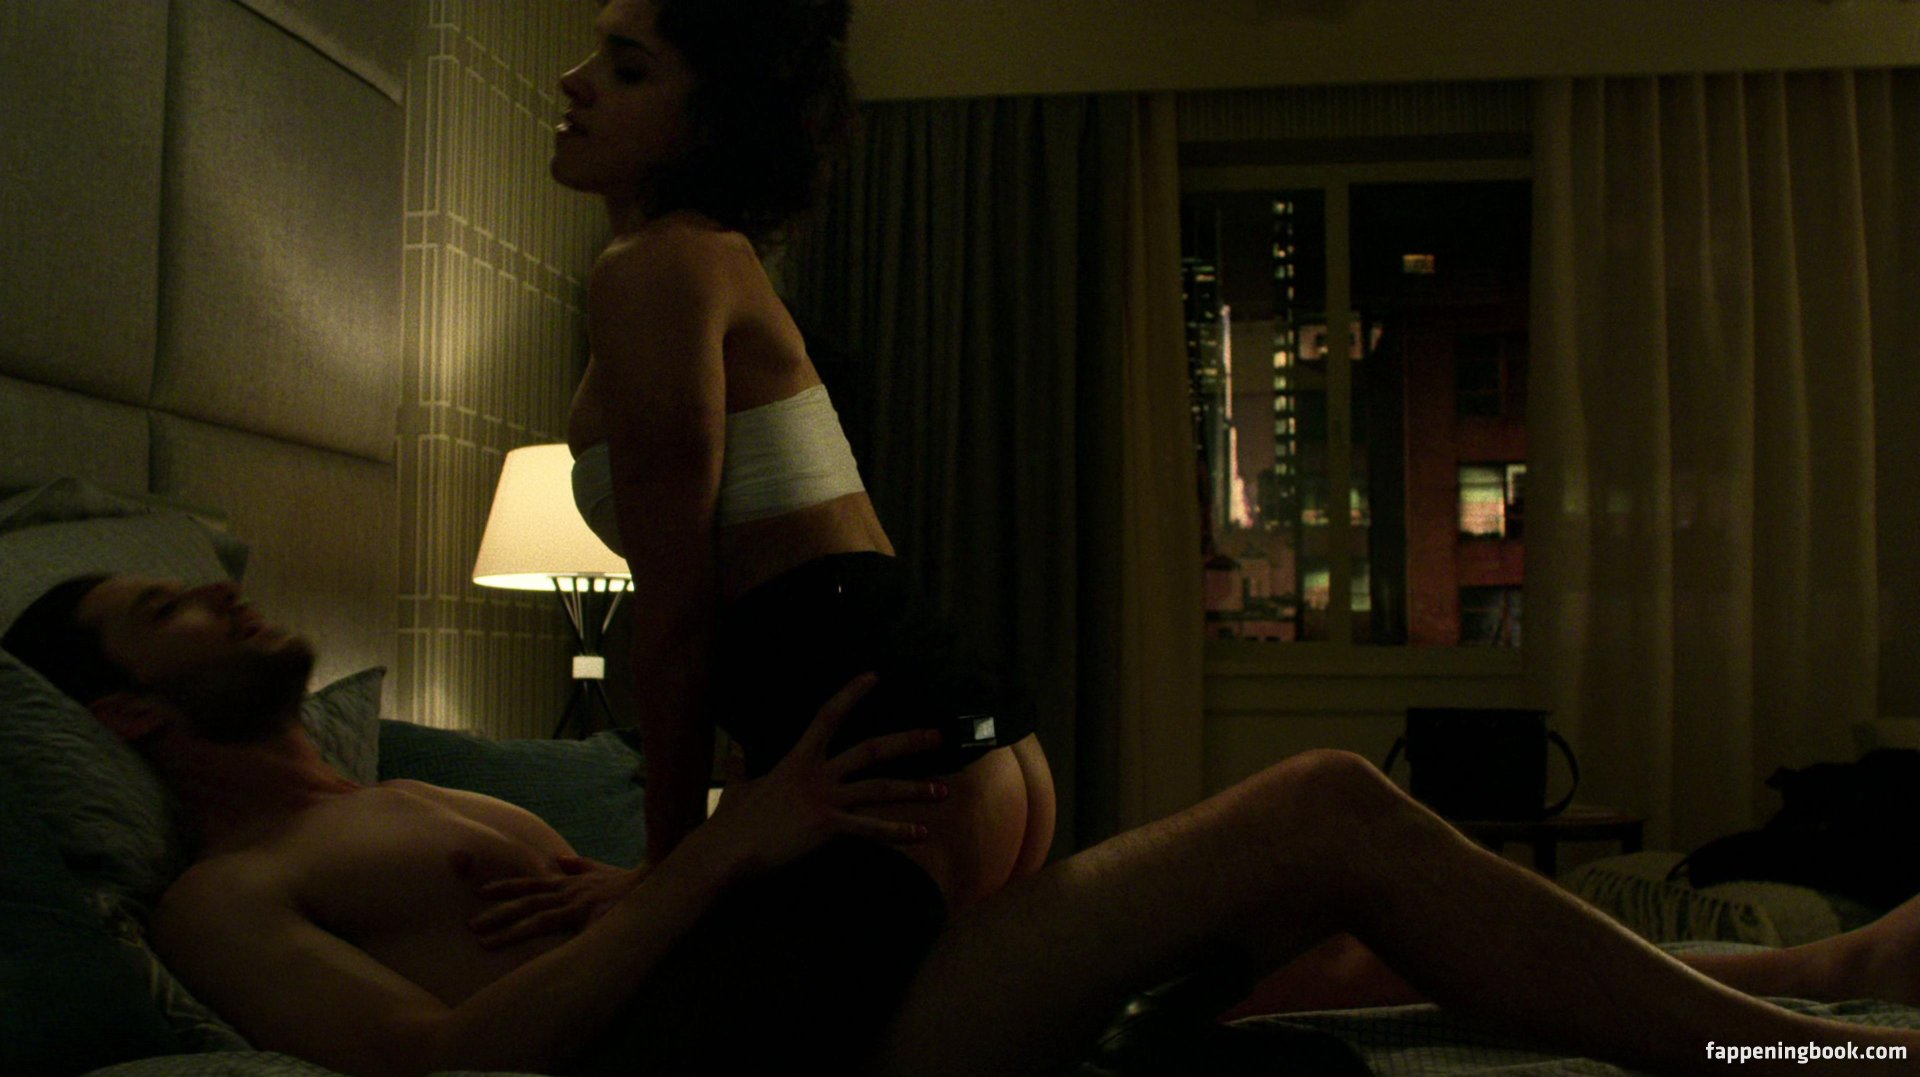 Amber Rose Revah Nue amber rose revah nude, sexy, the fappening, uncensored